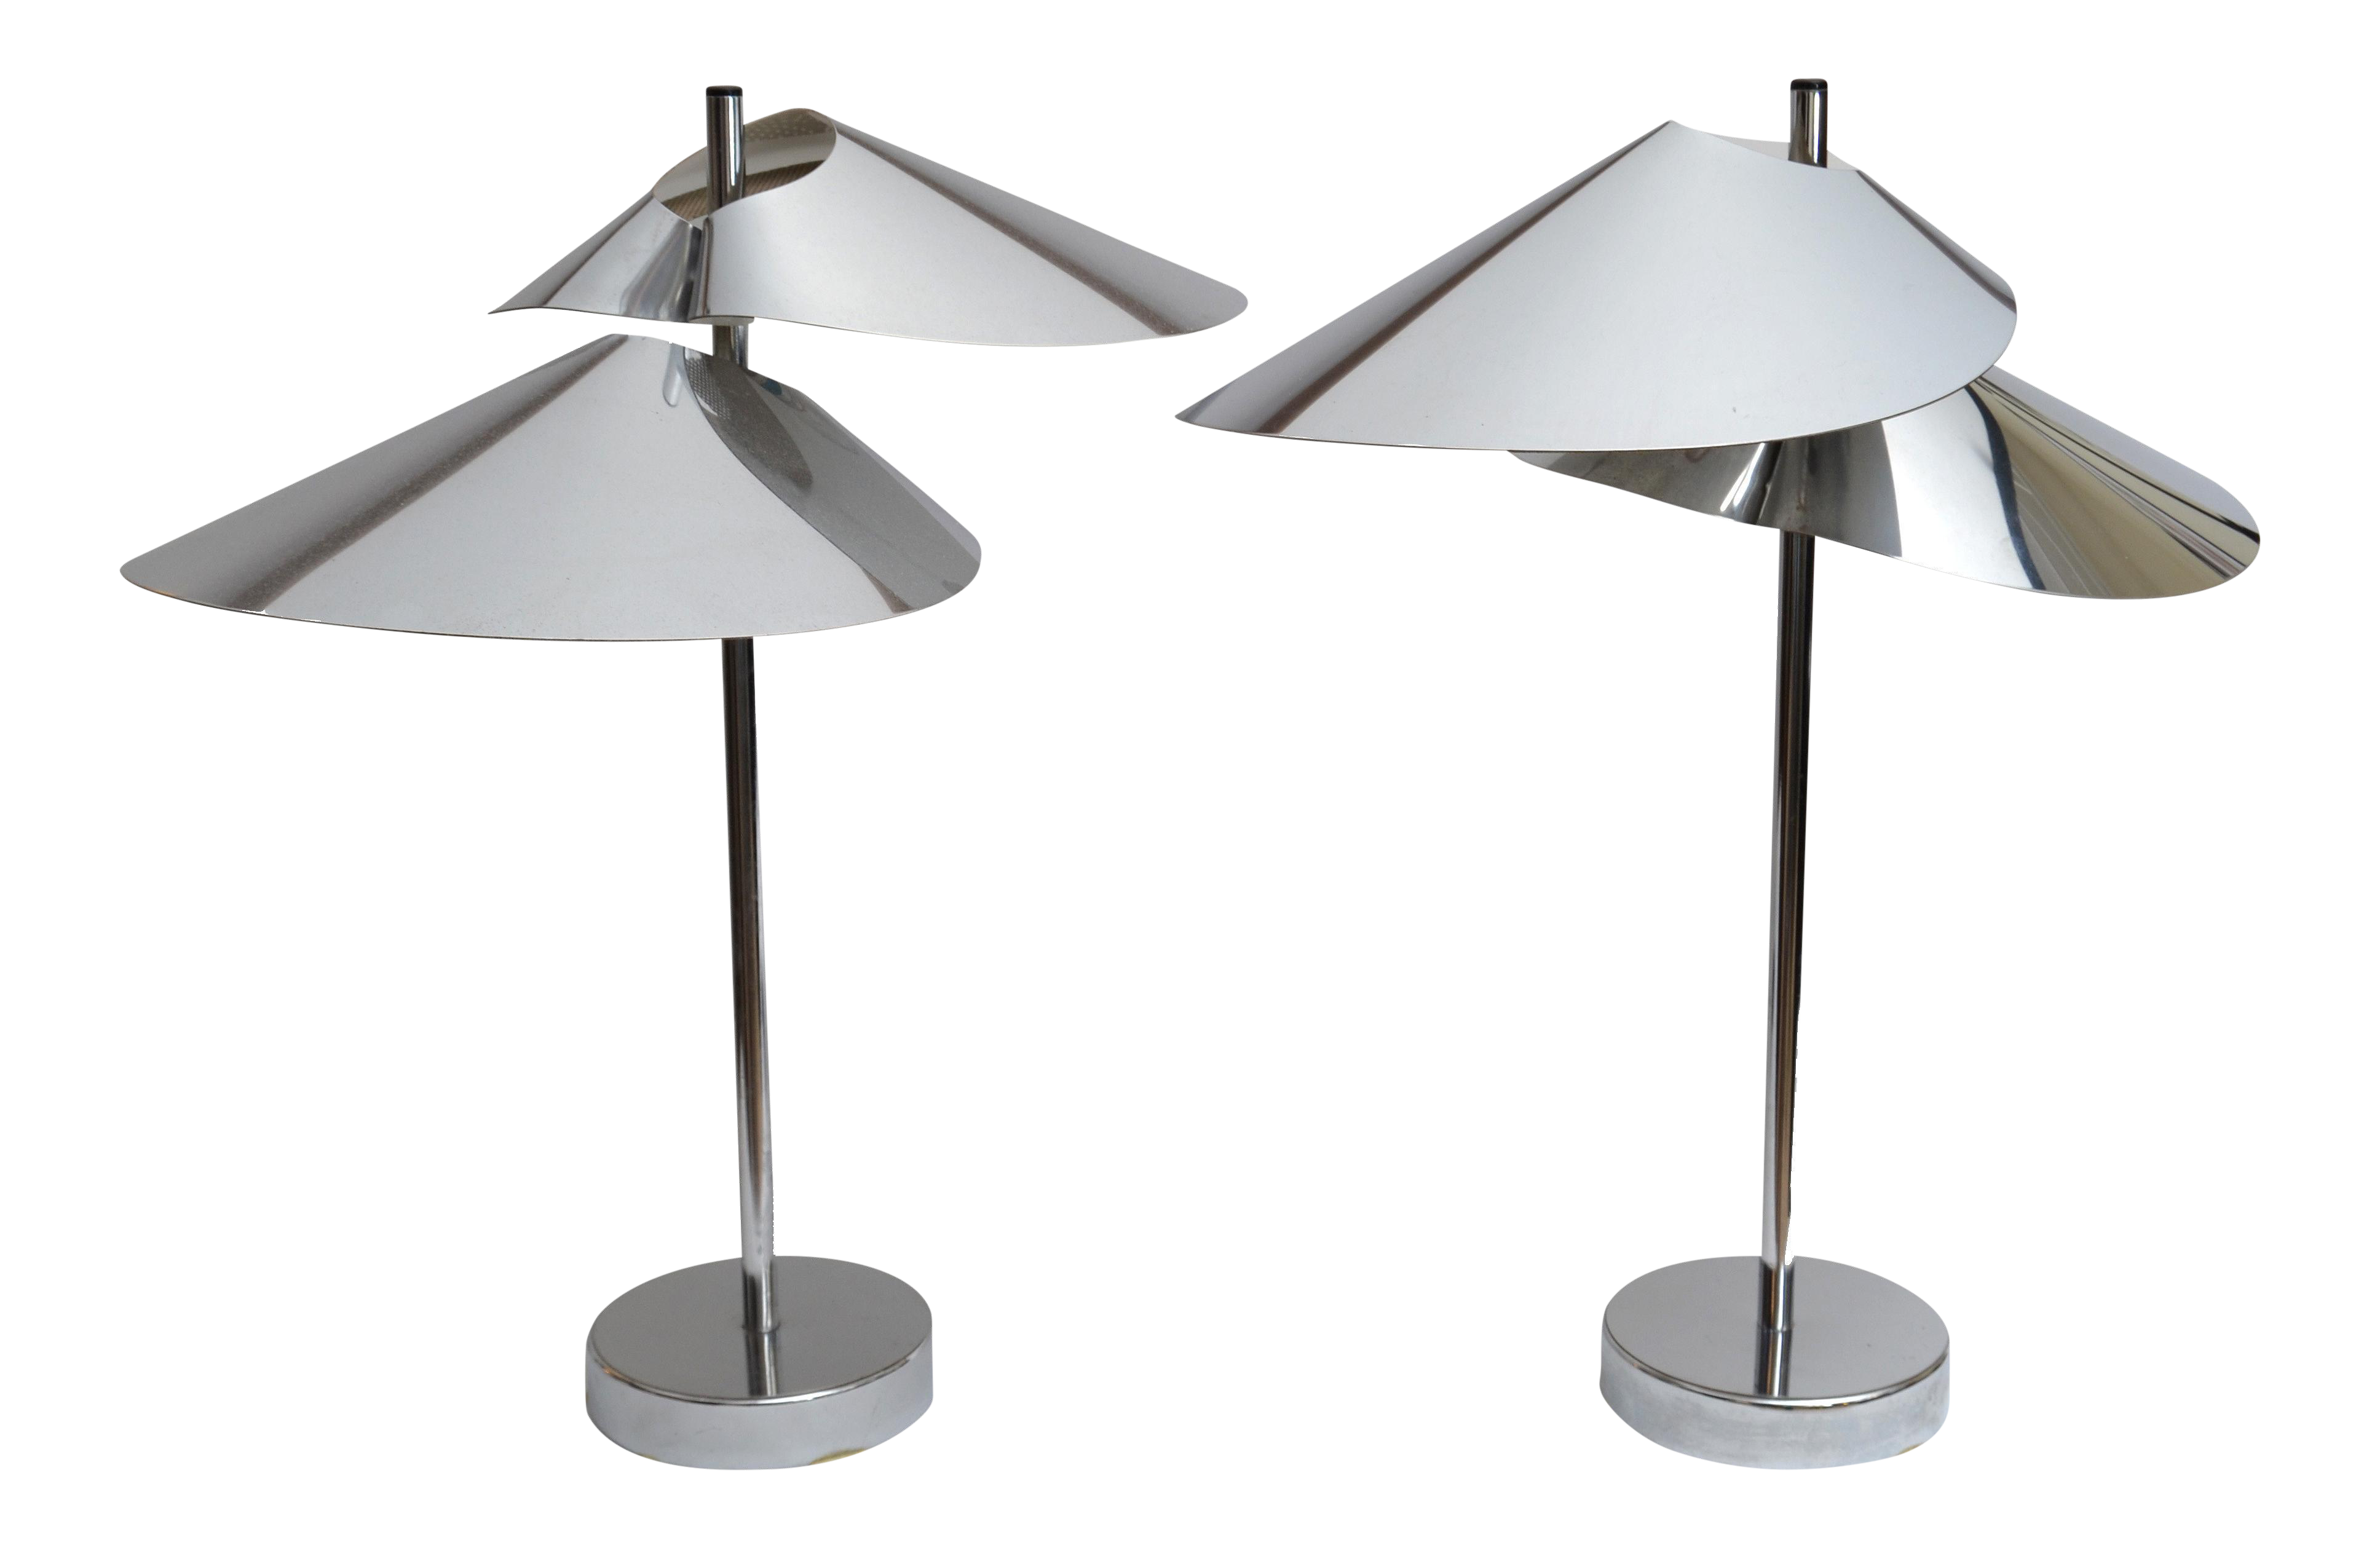 table free lancaster lamps overstock lamp home garden in shipping chrome today product